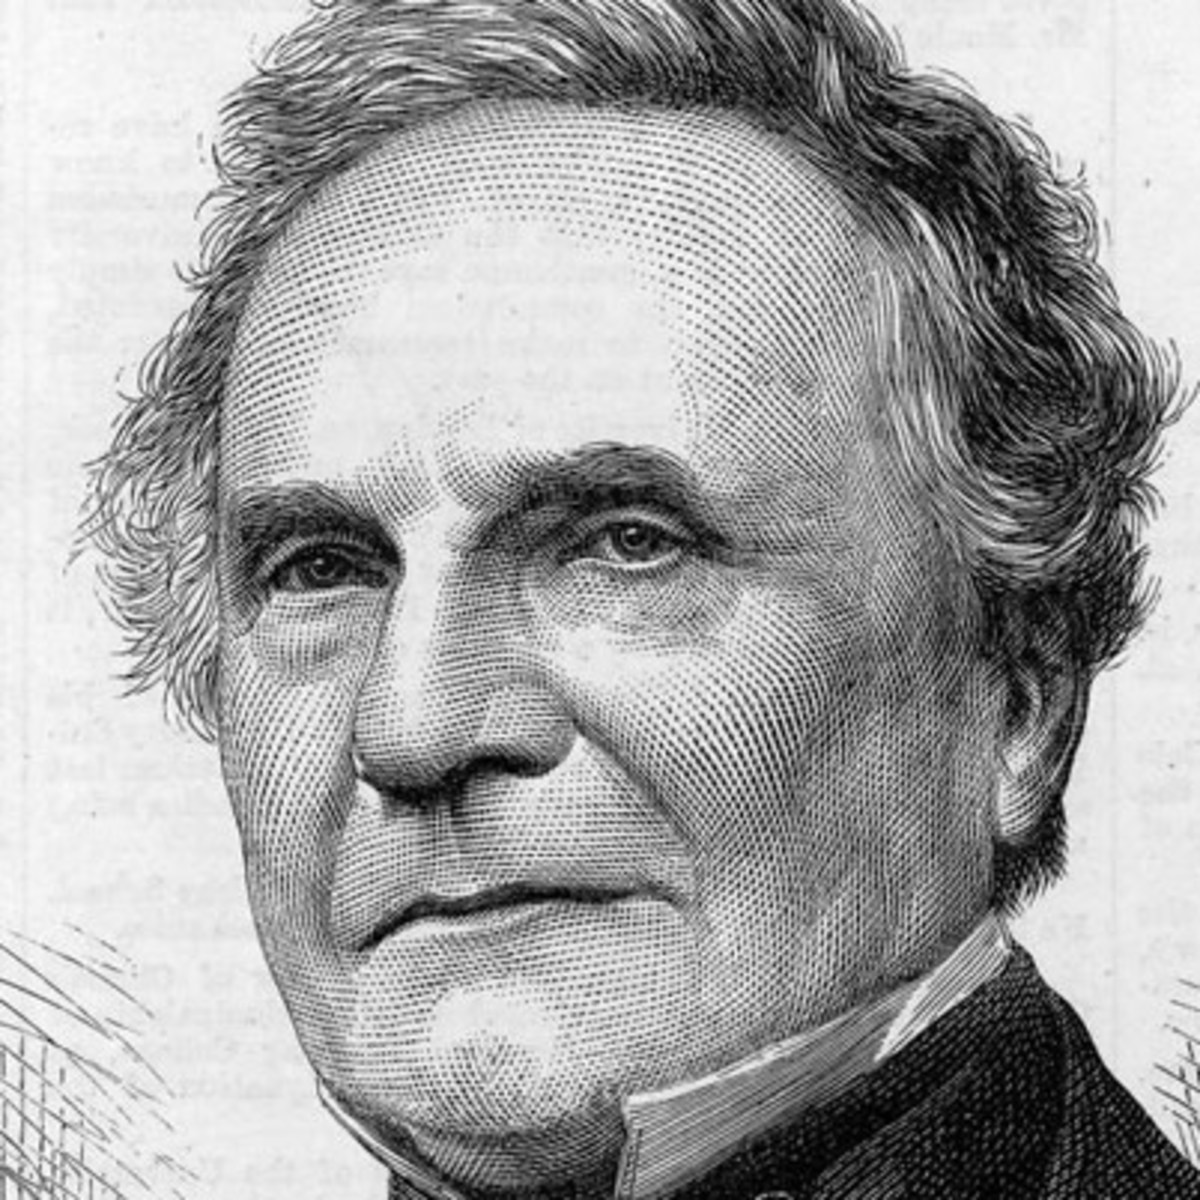 charles babbage a biography Charles babbage is regarded as the father of modern computers this biography profiles his childhood, life & timeline.